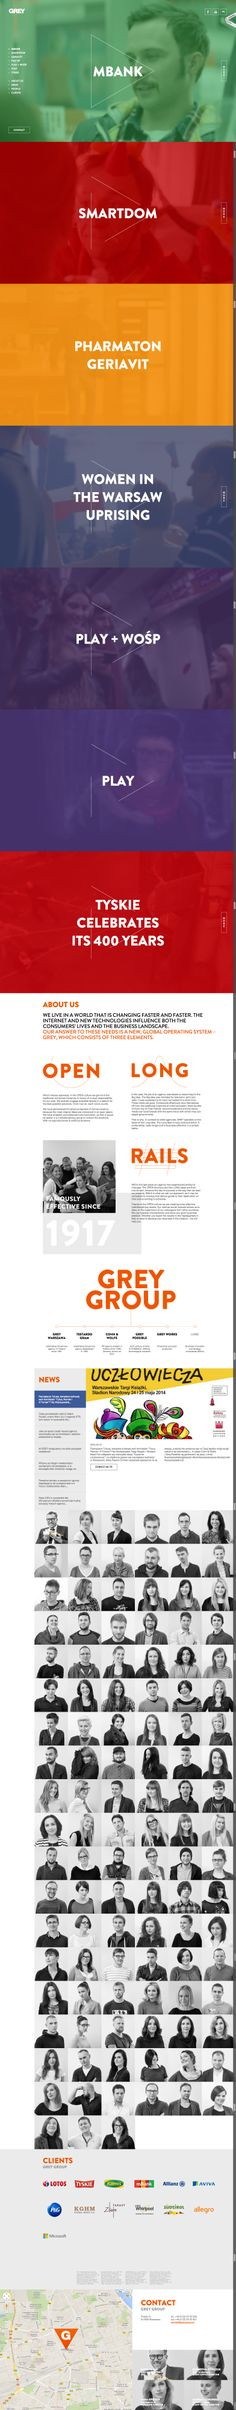 Grey Group website redesign  // loops + parallax + long page = simple elegant engaging page design //  http://greygroup.pl/